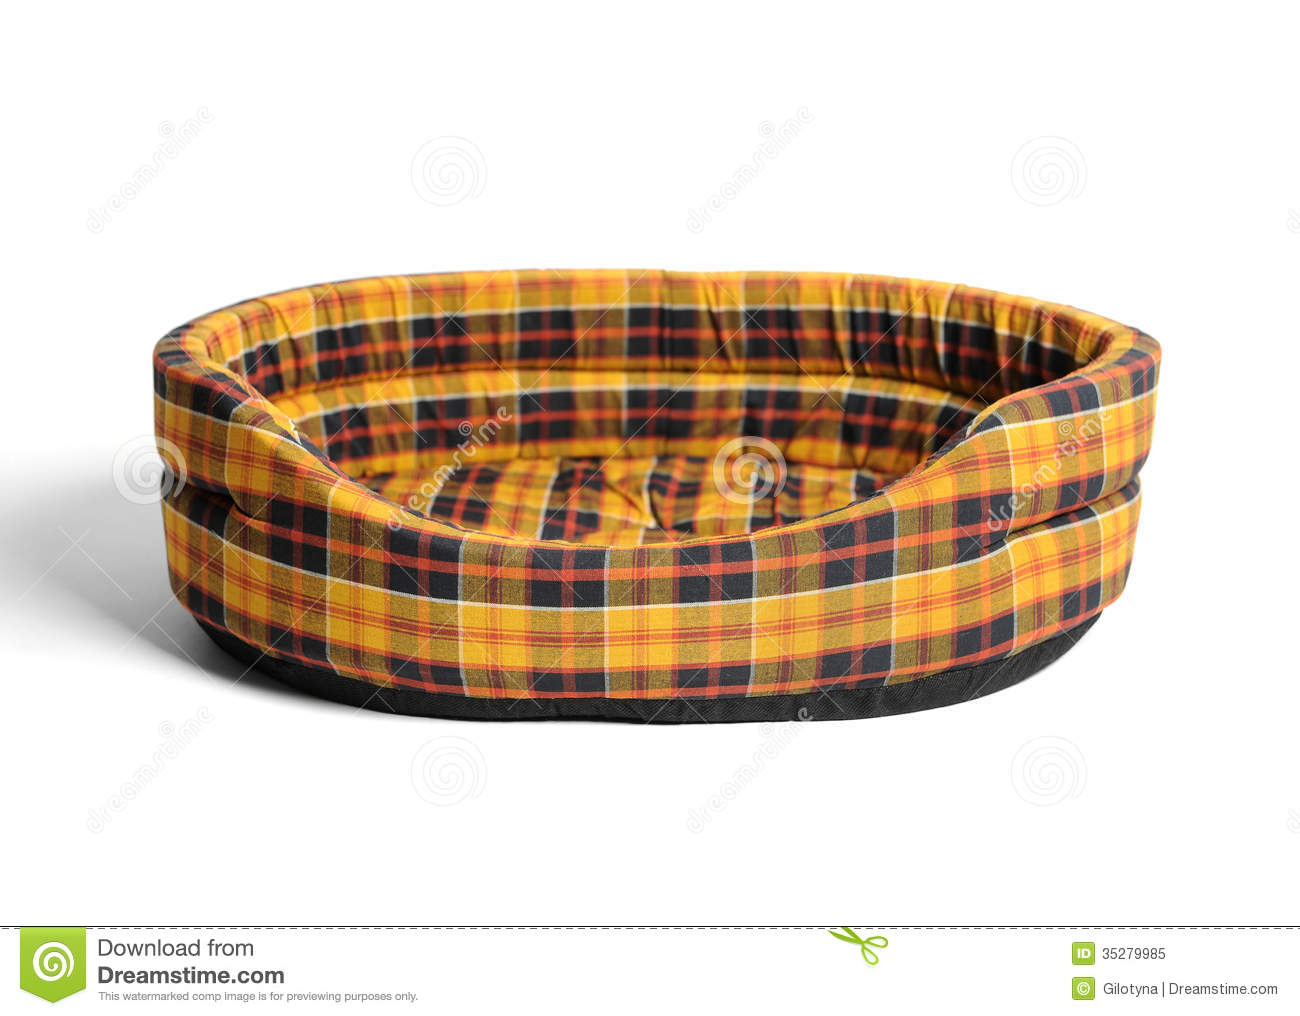 Cat Bed Royalty Free Stock Photo - Image: 35279985